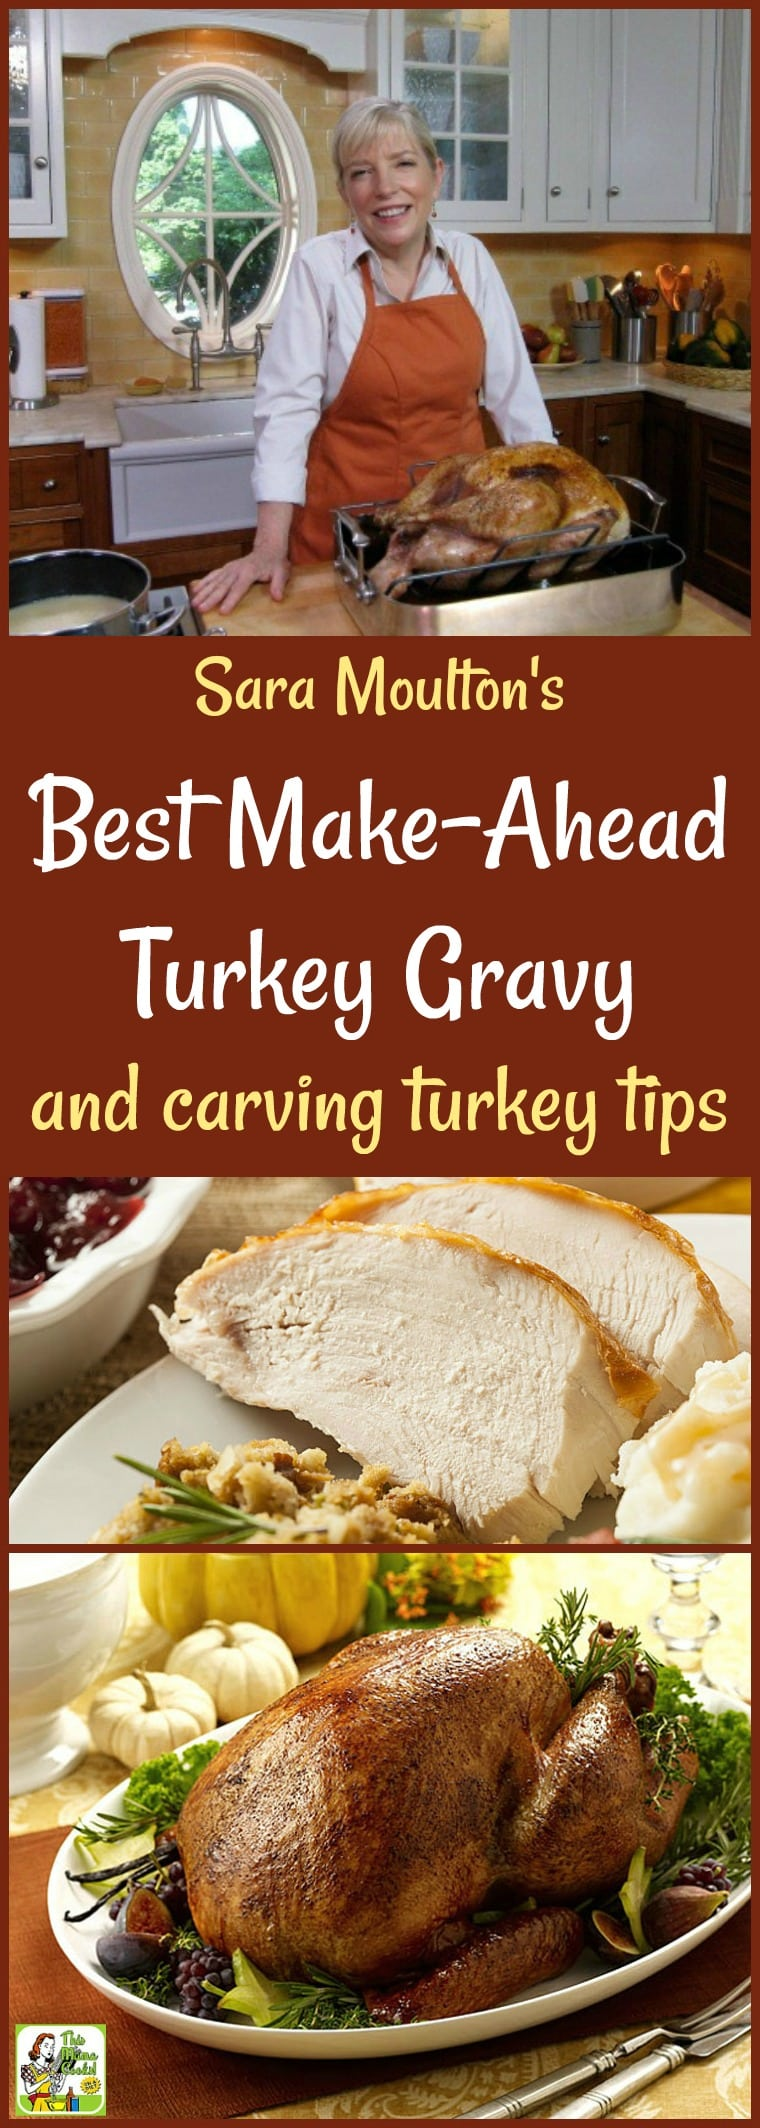 Need some Thanksgiving recipe help? Make Sara Moulton\'s Best Make-Ahead Turkey Gravy recipe! This easy make-ahead turkey gravy recipe comes with gluten free and dairy free options. Get carving turkey tips and meal prep tips, too. #thanksgiving #thanksgivingrecipes #gravy #turkey #mealprep #saramoulton #recipe #recipeoftheday #healthyrecipes #glutenfree #easyrecipes